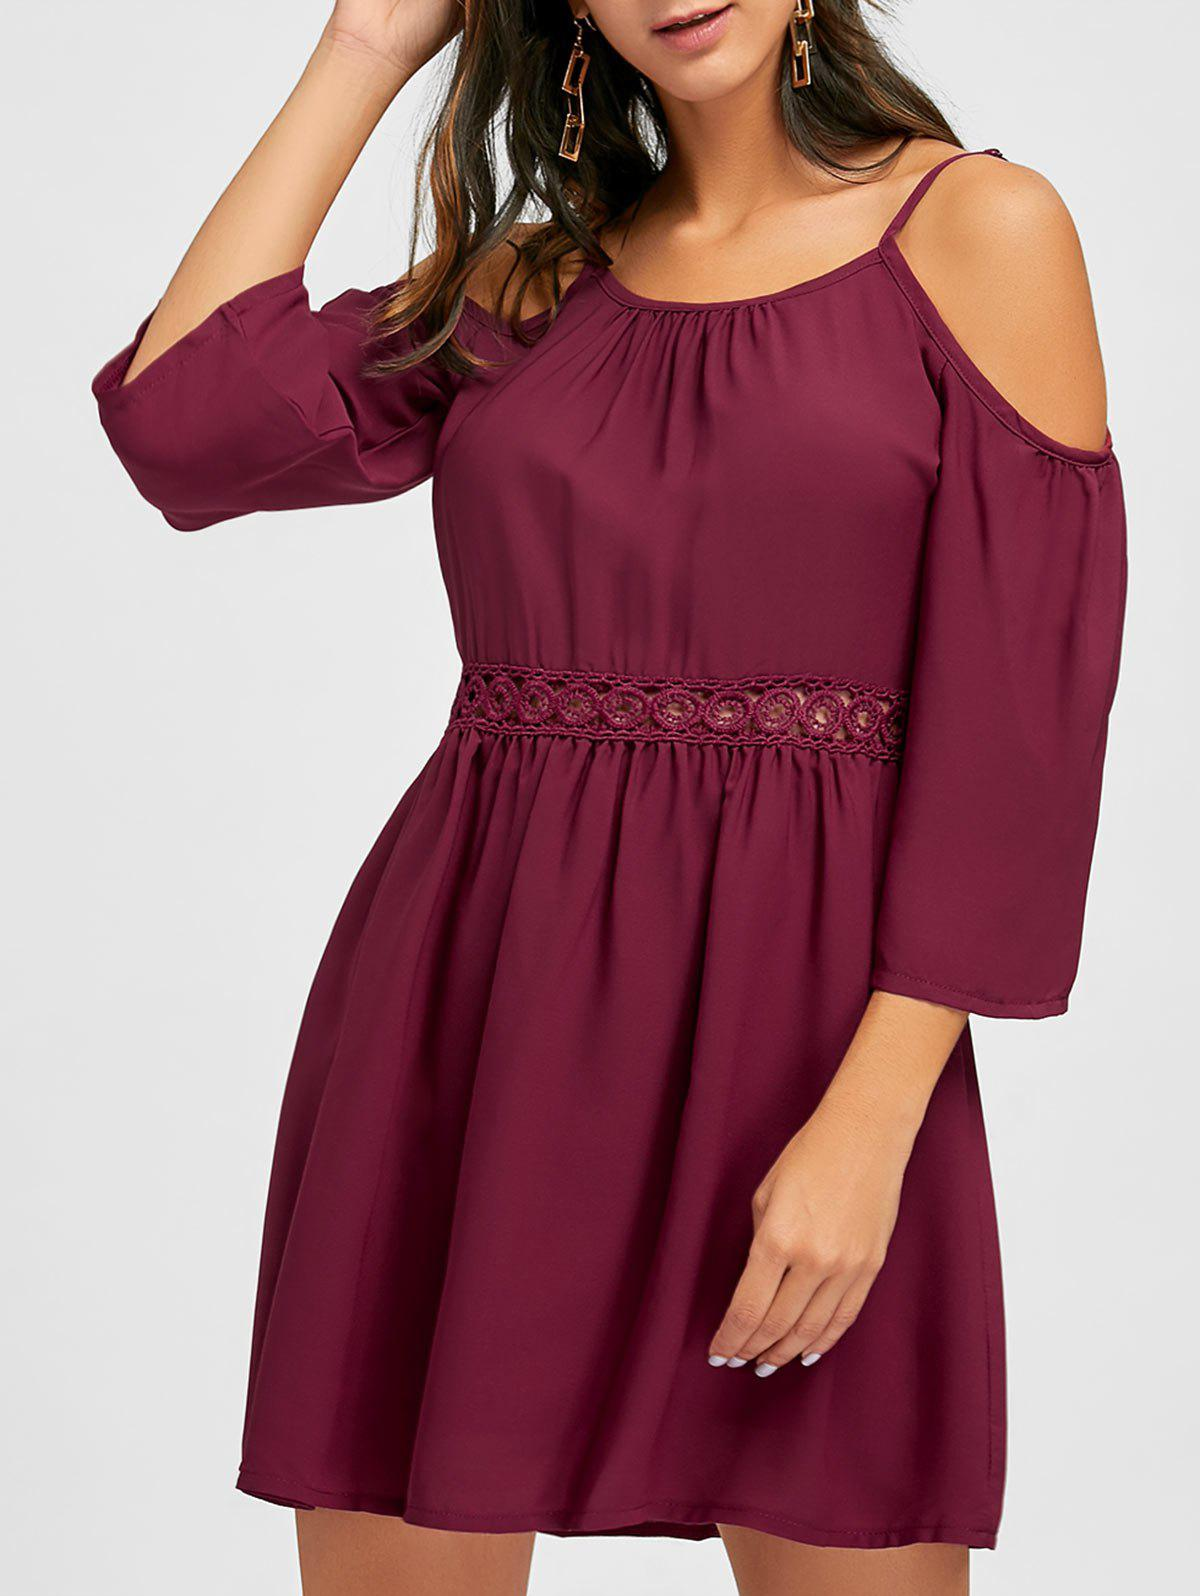 Cami Strap Open Shoulder Chiffon Dress - WINE RED XL